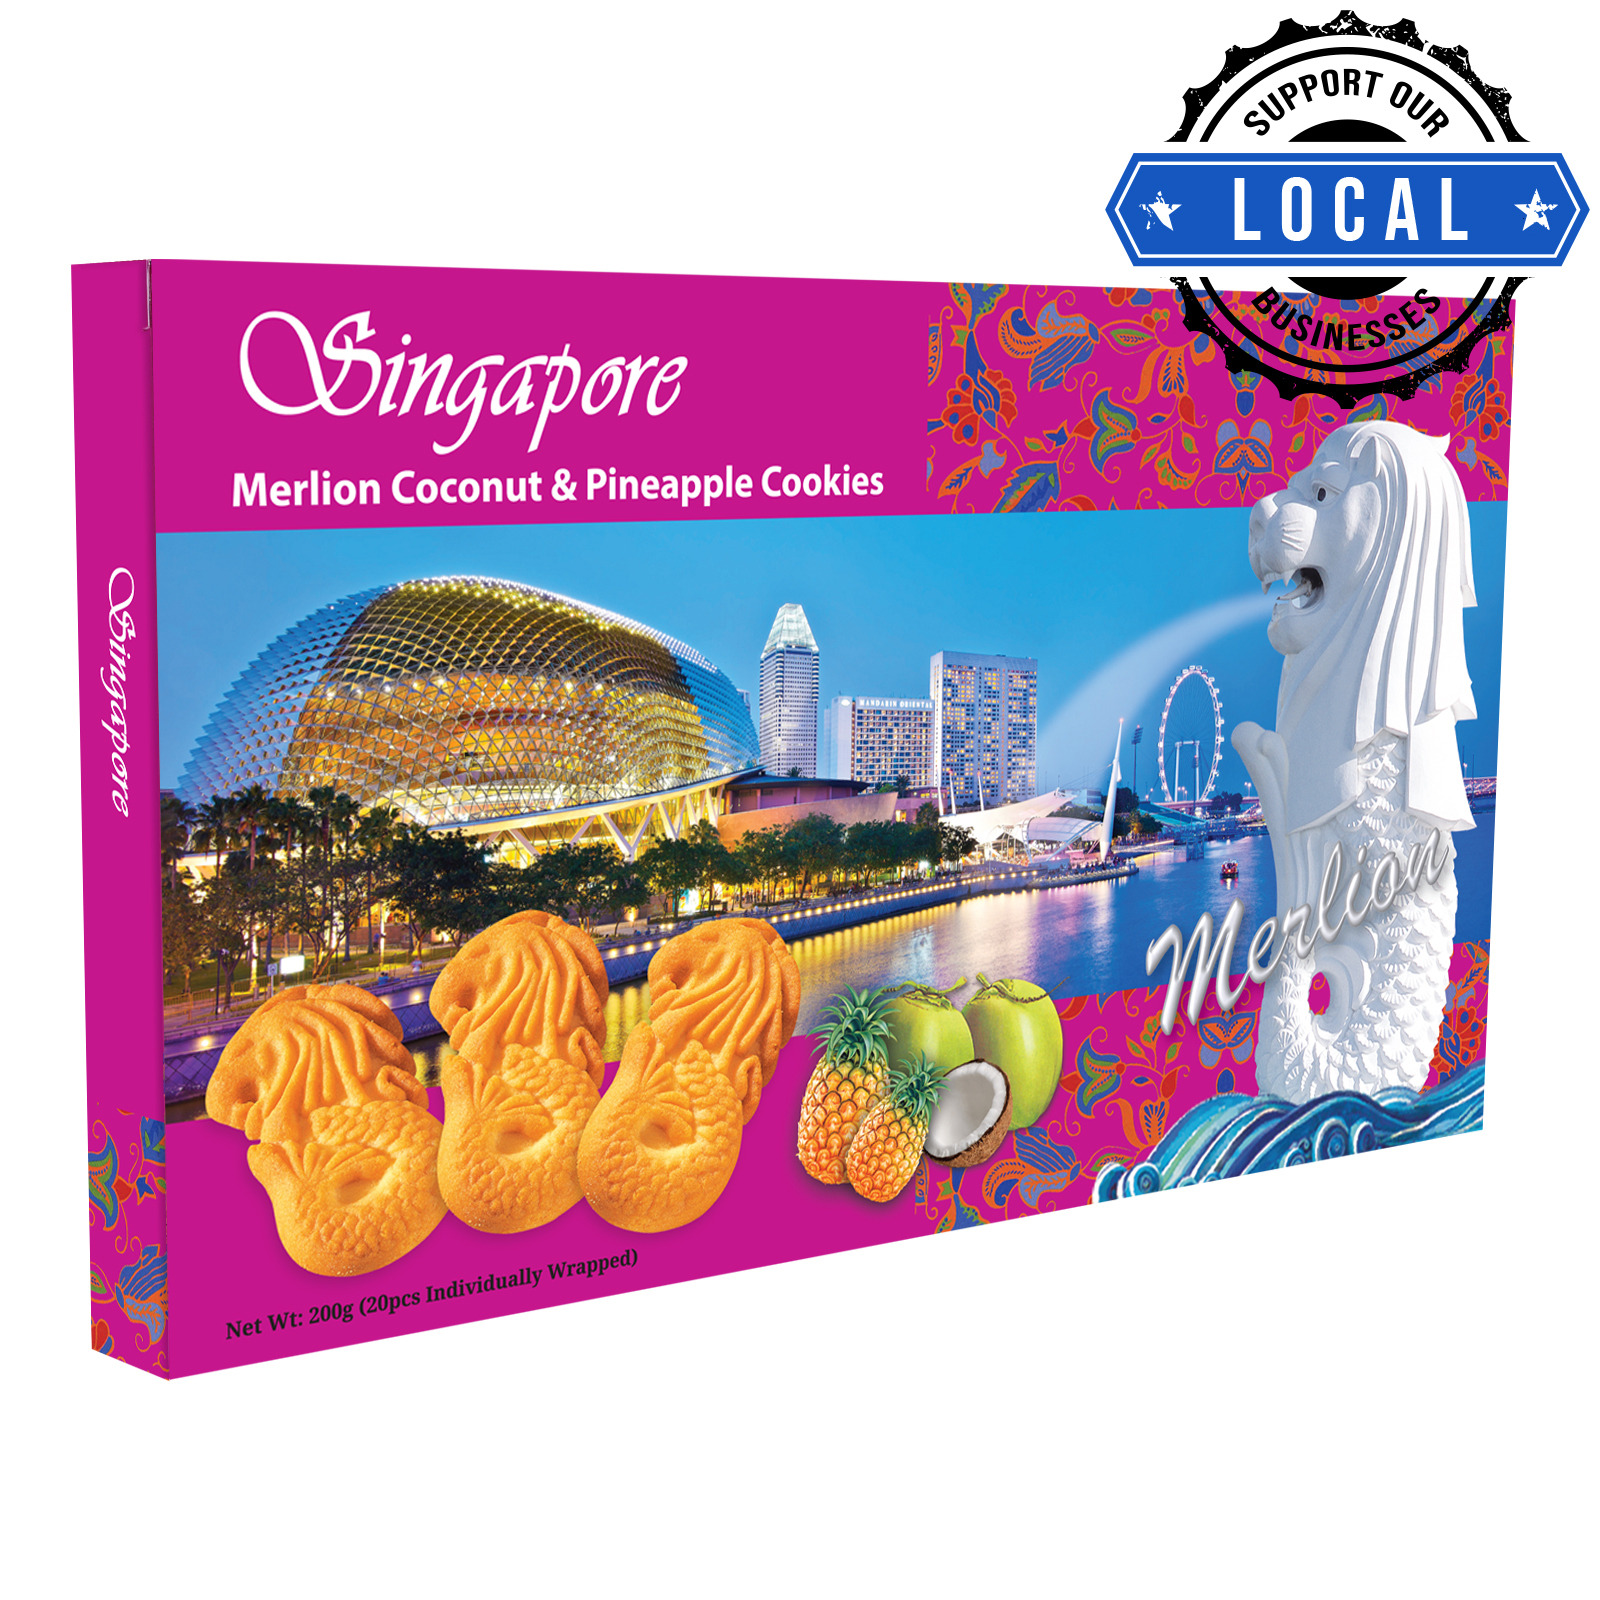 Manly Singapore Merlion Butter Cookies - Coconut & Pineapple